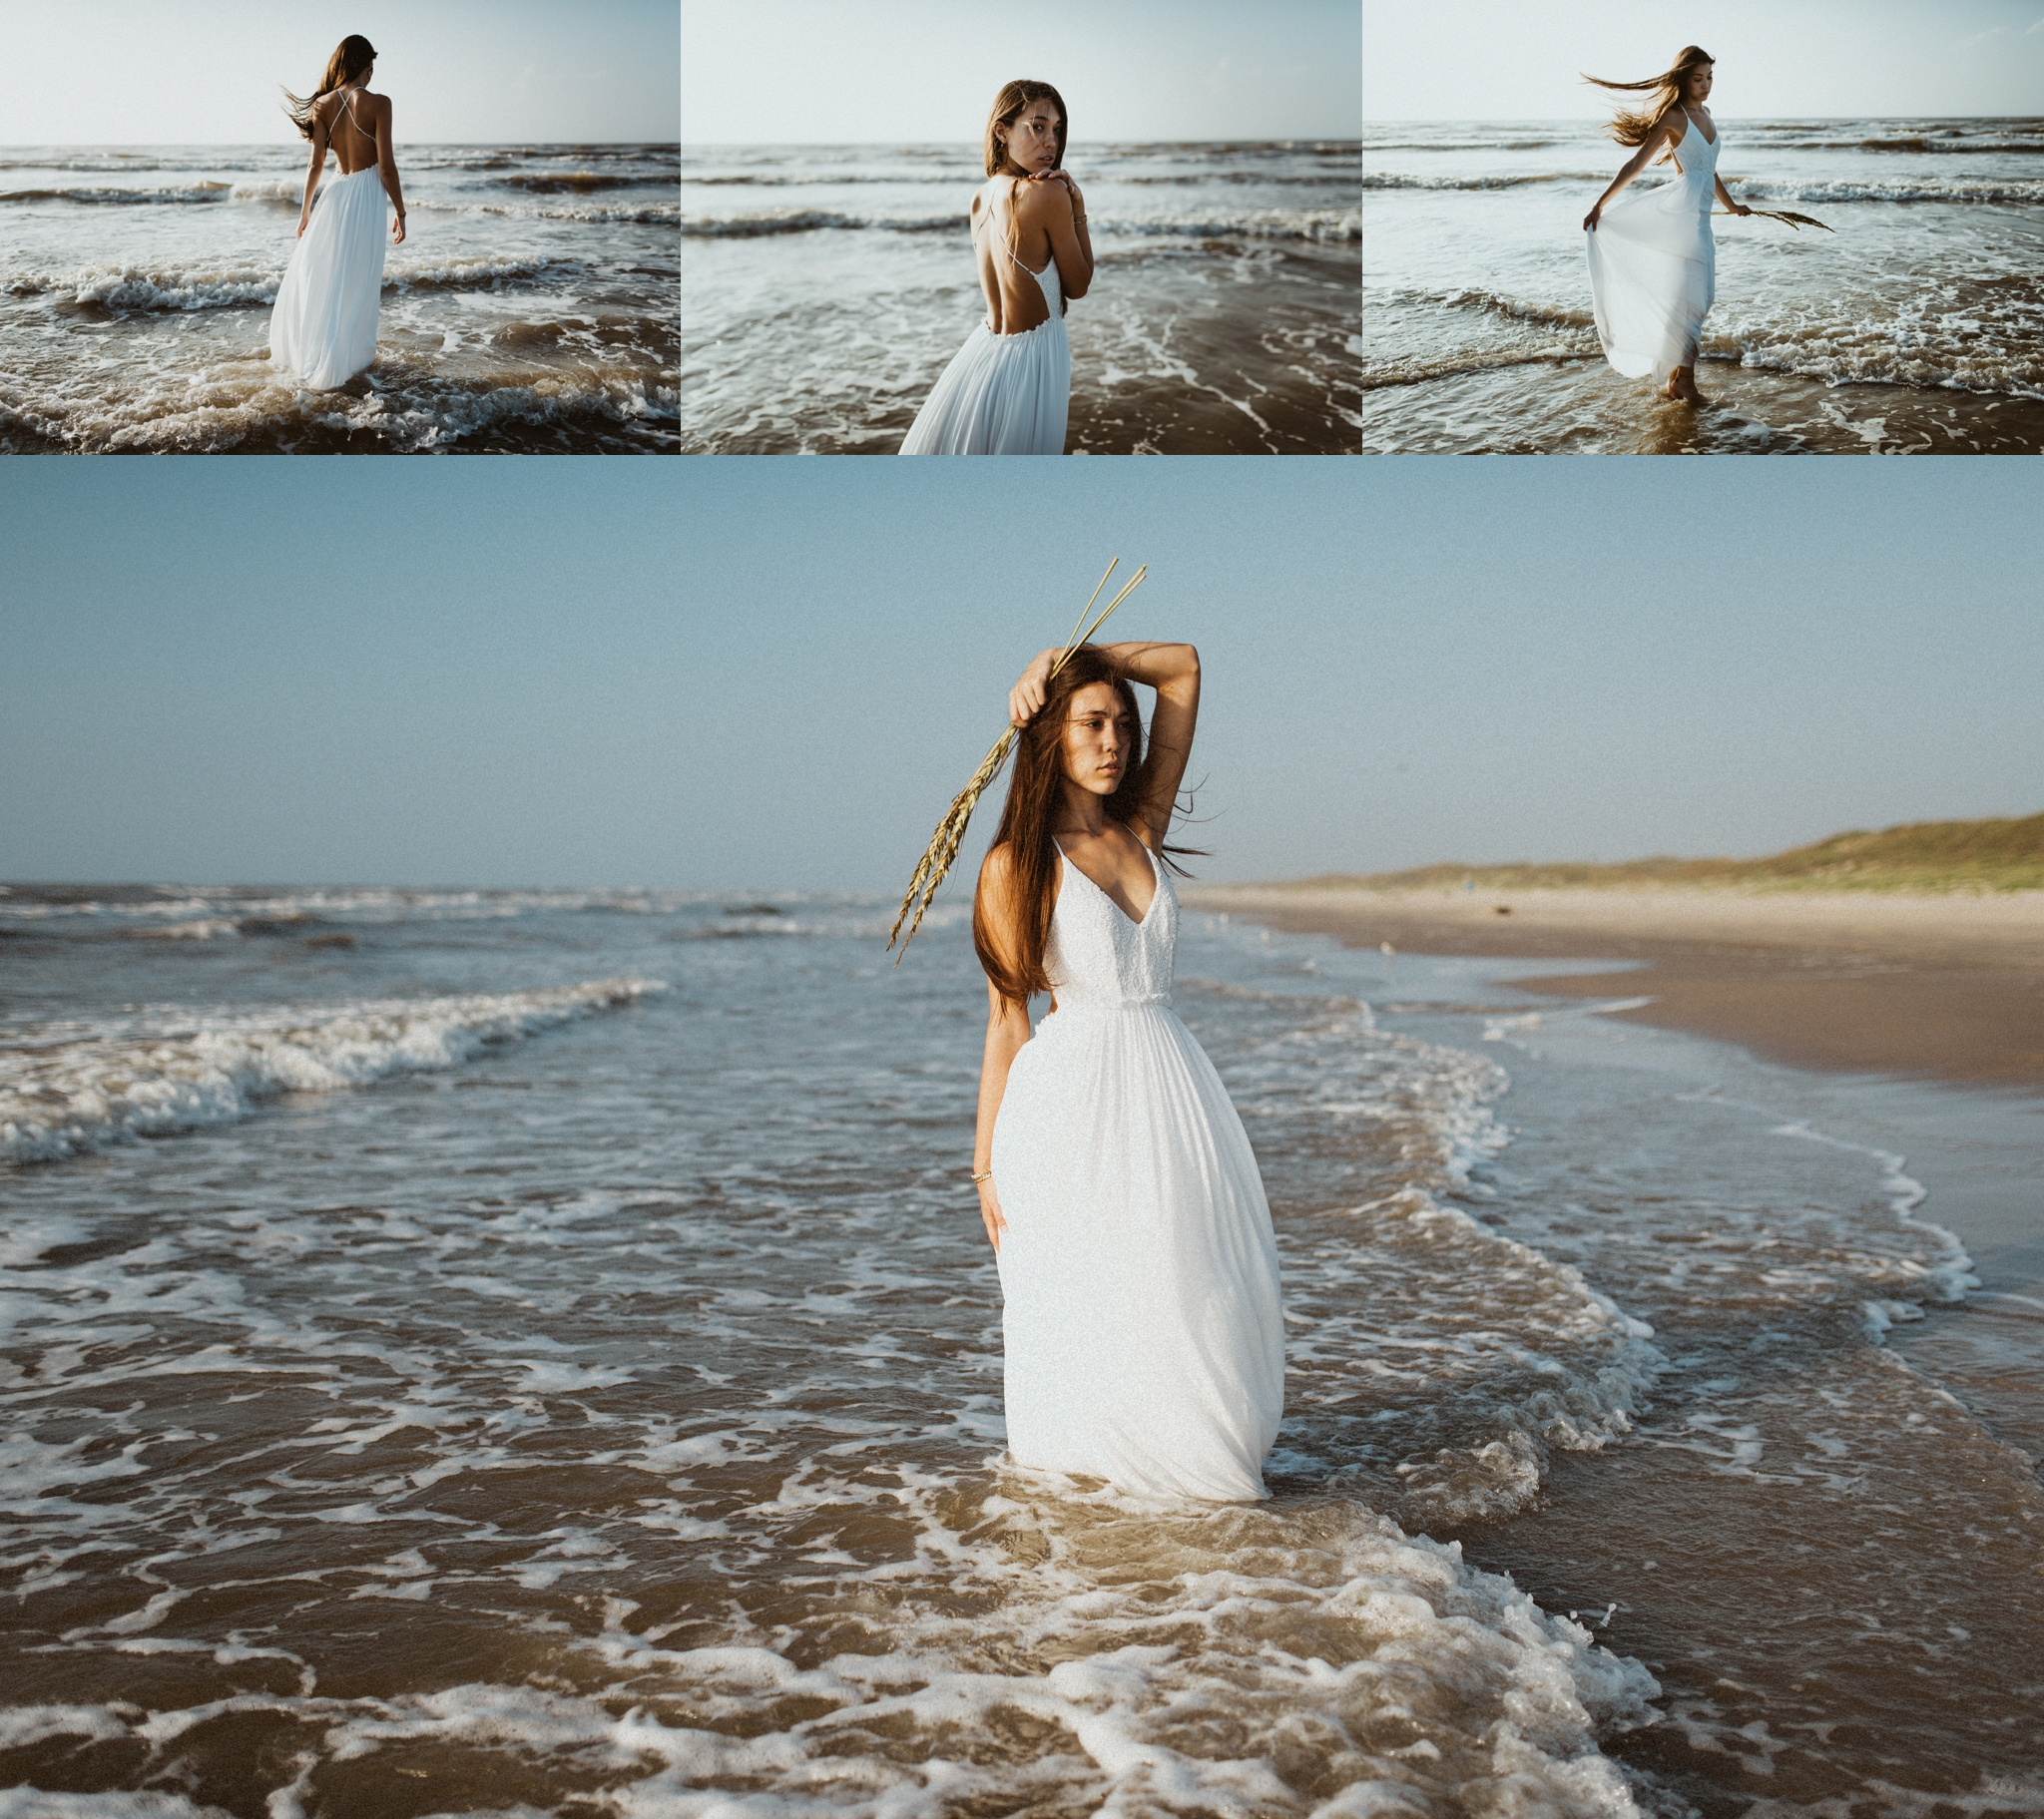 Padre-Island-Beach-Corpus-Christi-Texas-Emotional-Storytelling-Photographer-Kerlyn-Van-Gelder-Photography